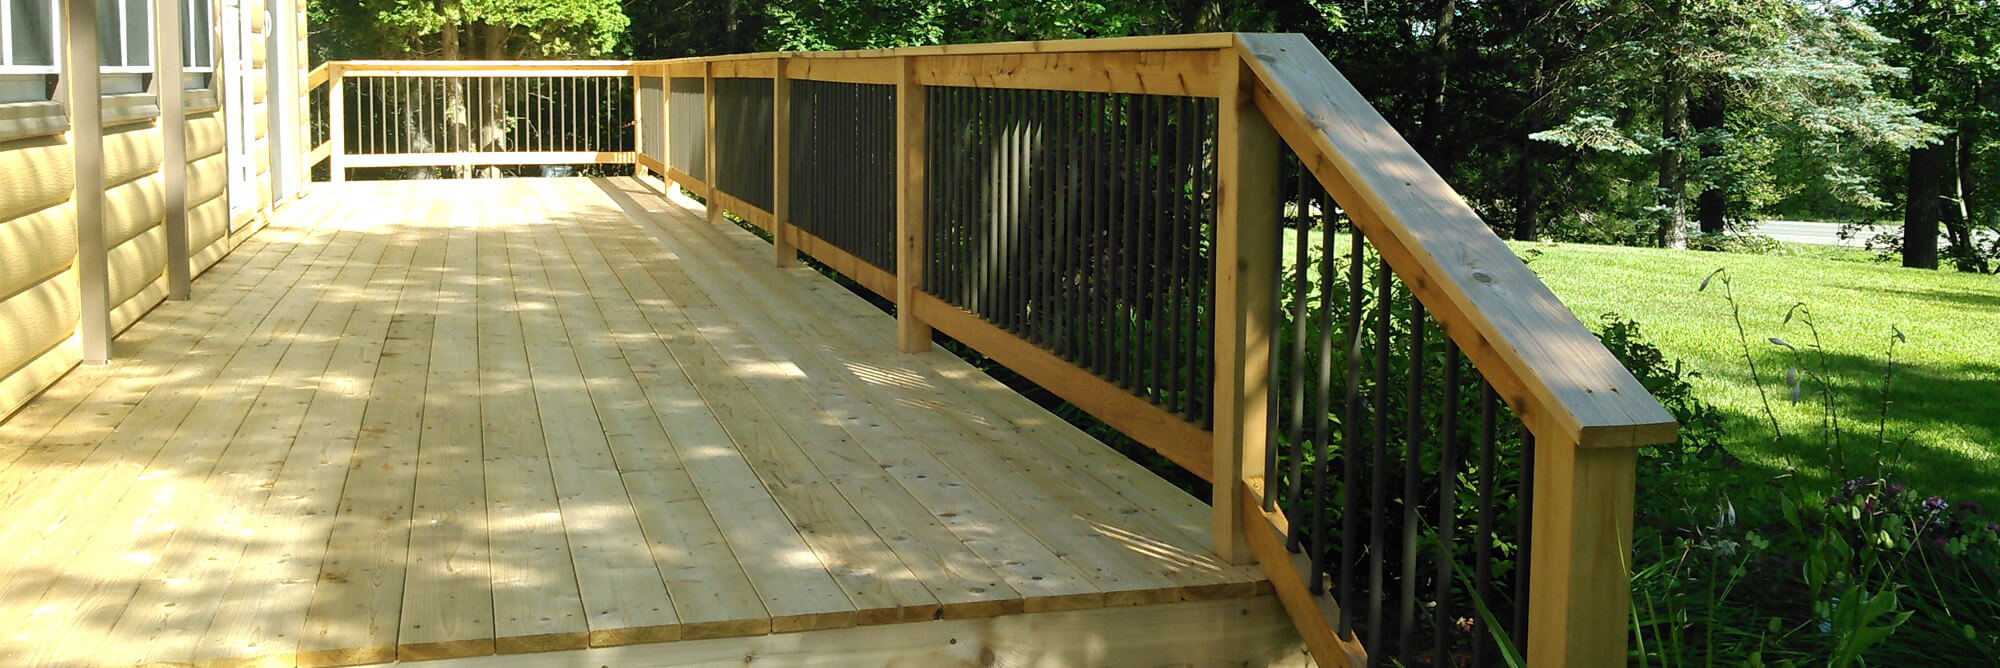 Newly constructed cedar wood deck with wrought iron railings